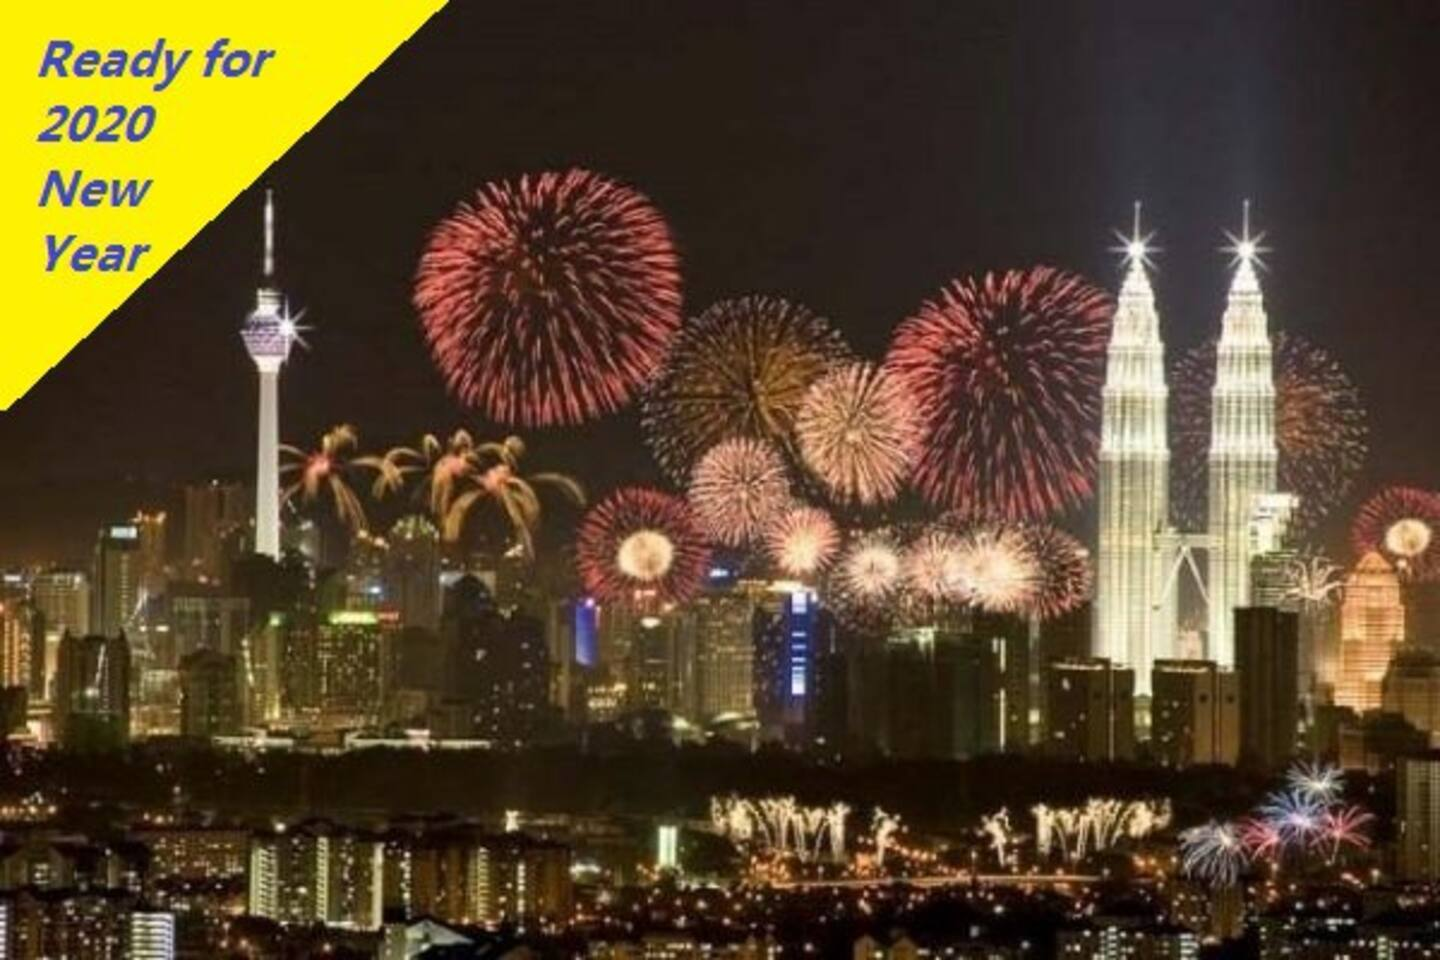 Are you ready to watch the 2020 new year eve fireworks show ? Book now to secure a stay.